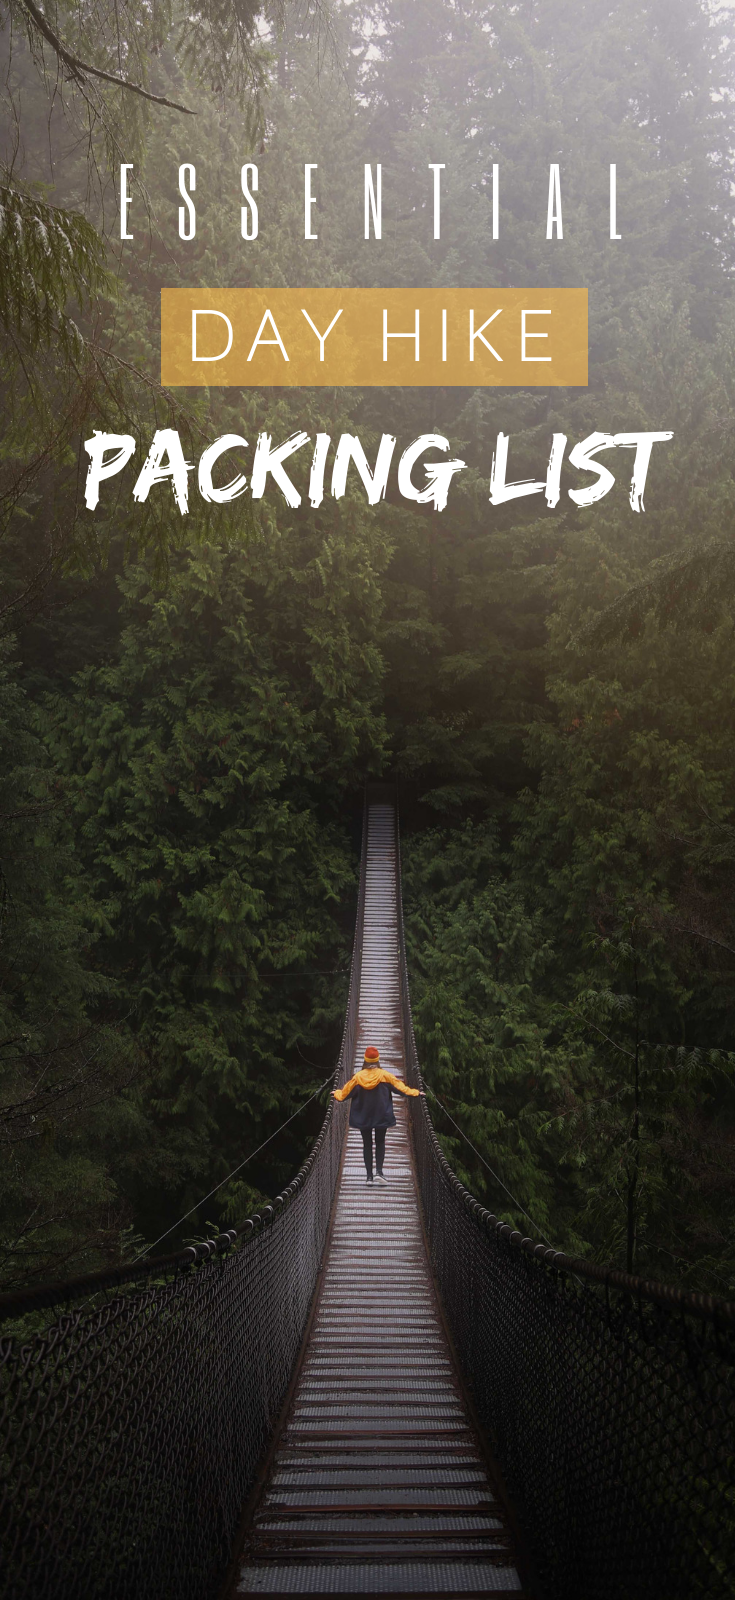 Pack With Me: Day Hike Packing List